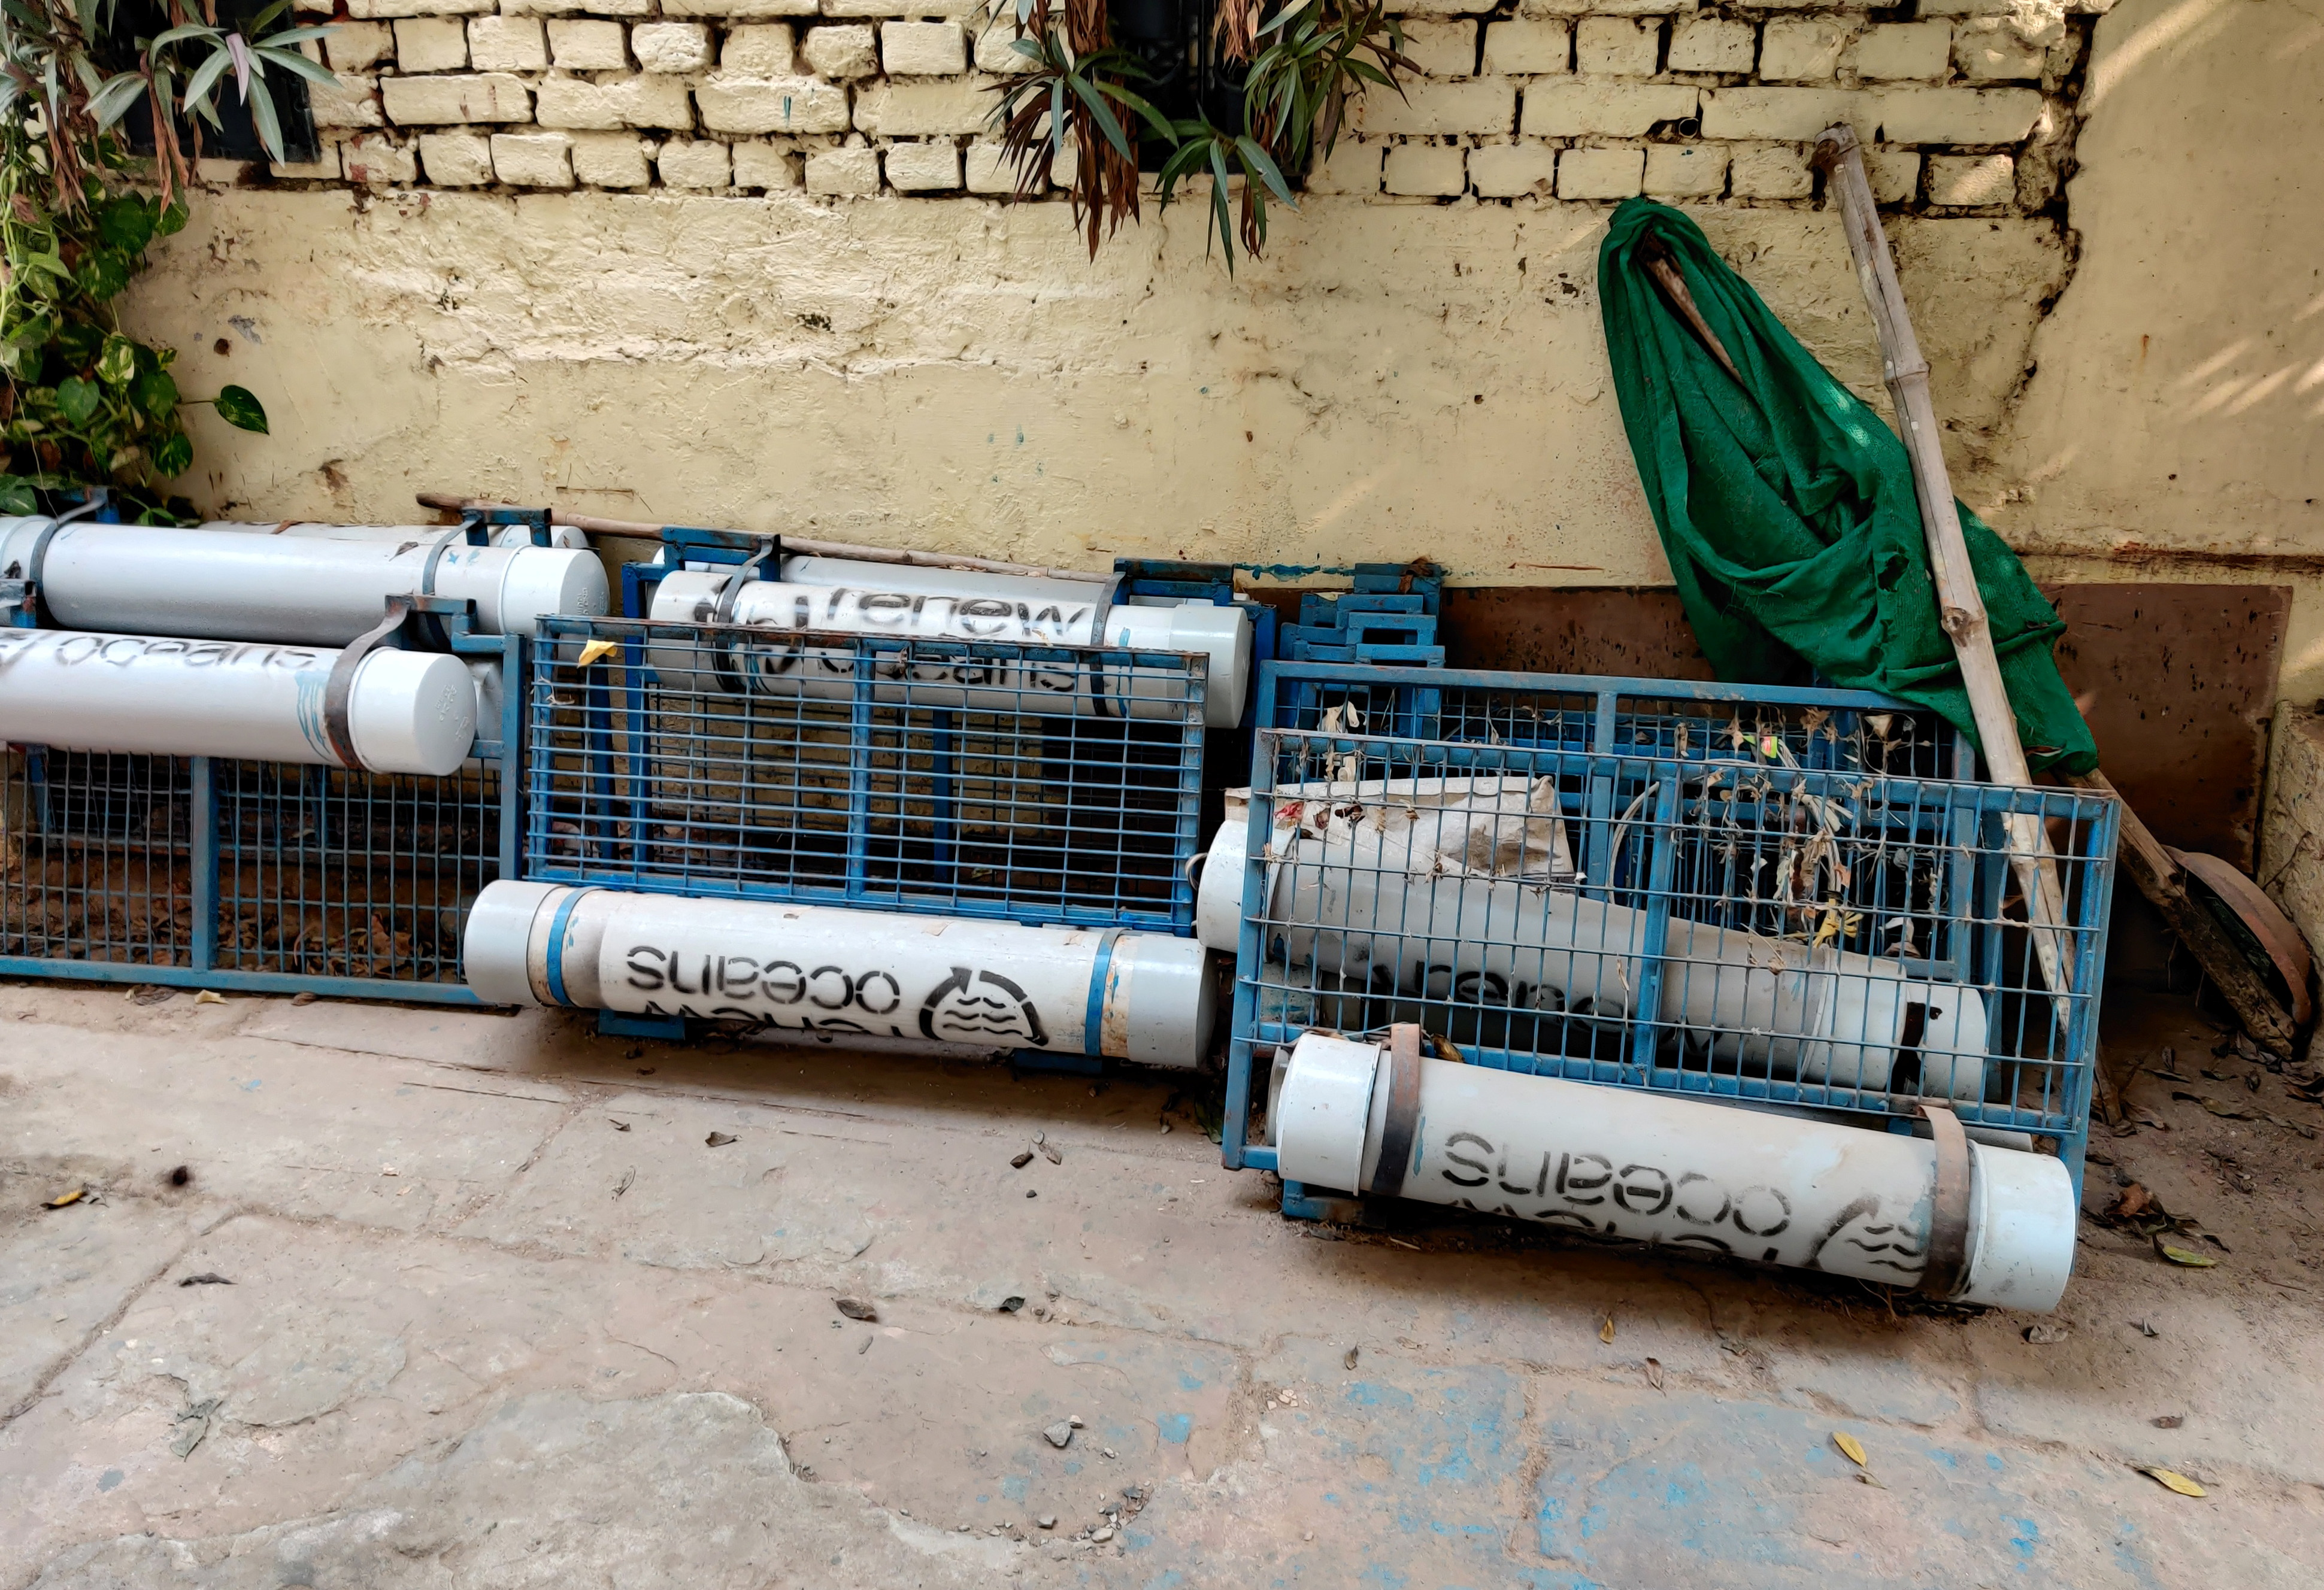 Litter traps are seen outside the locked office of Renew Oceans in Varanasi, in the northern state of Uttar Pradesh, India, December 4, 2020. REUTERS/Saurabh Sharma